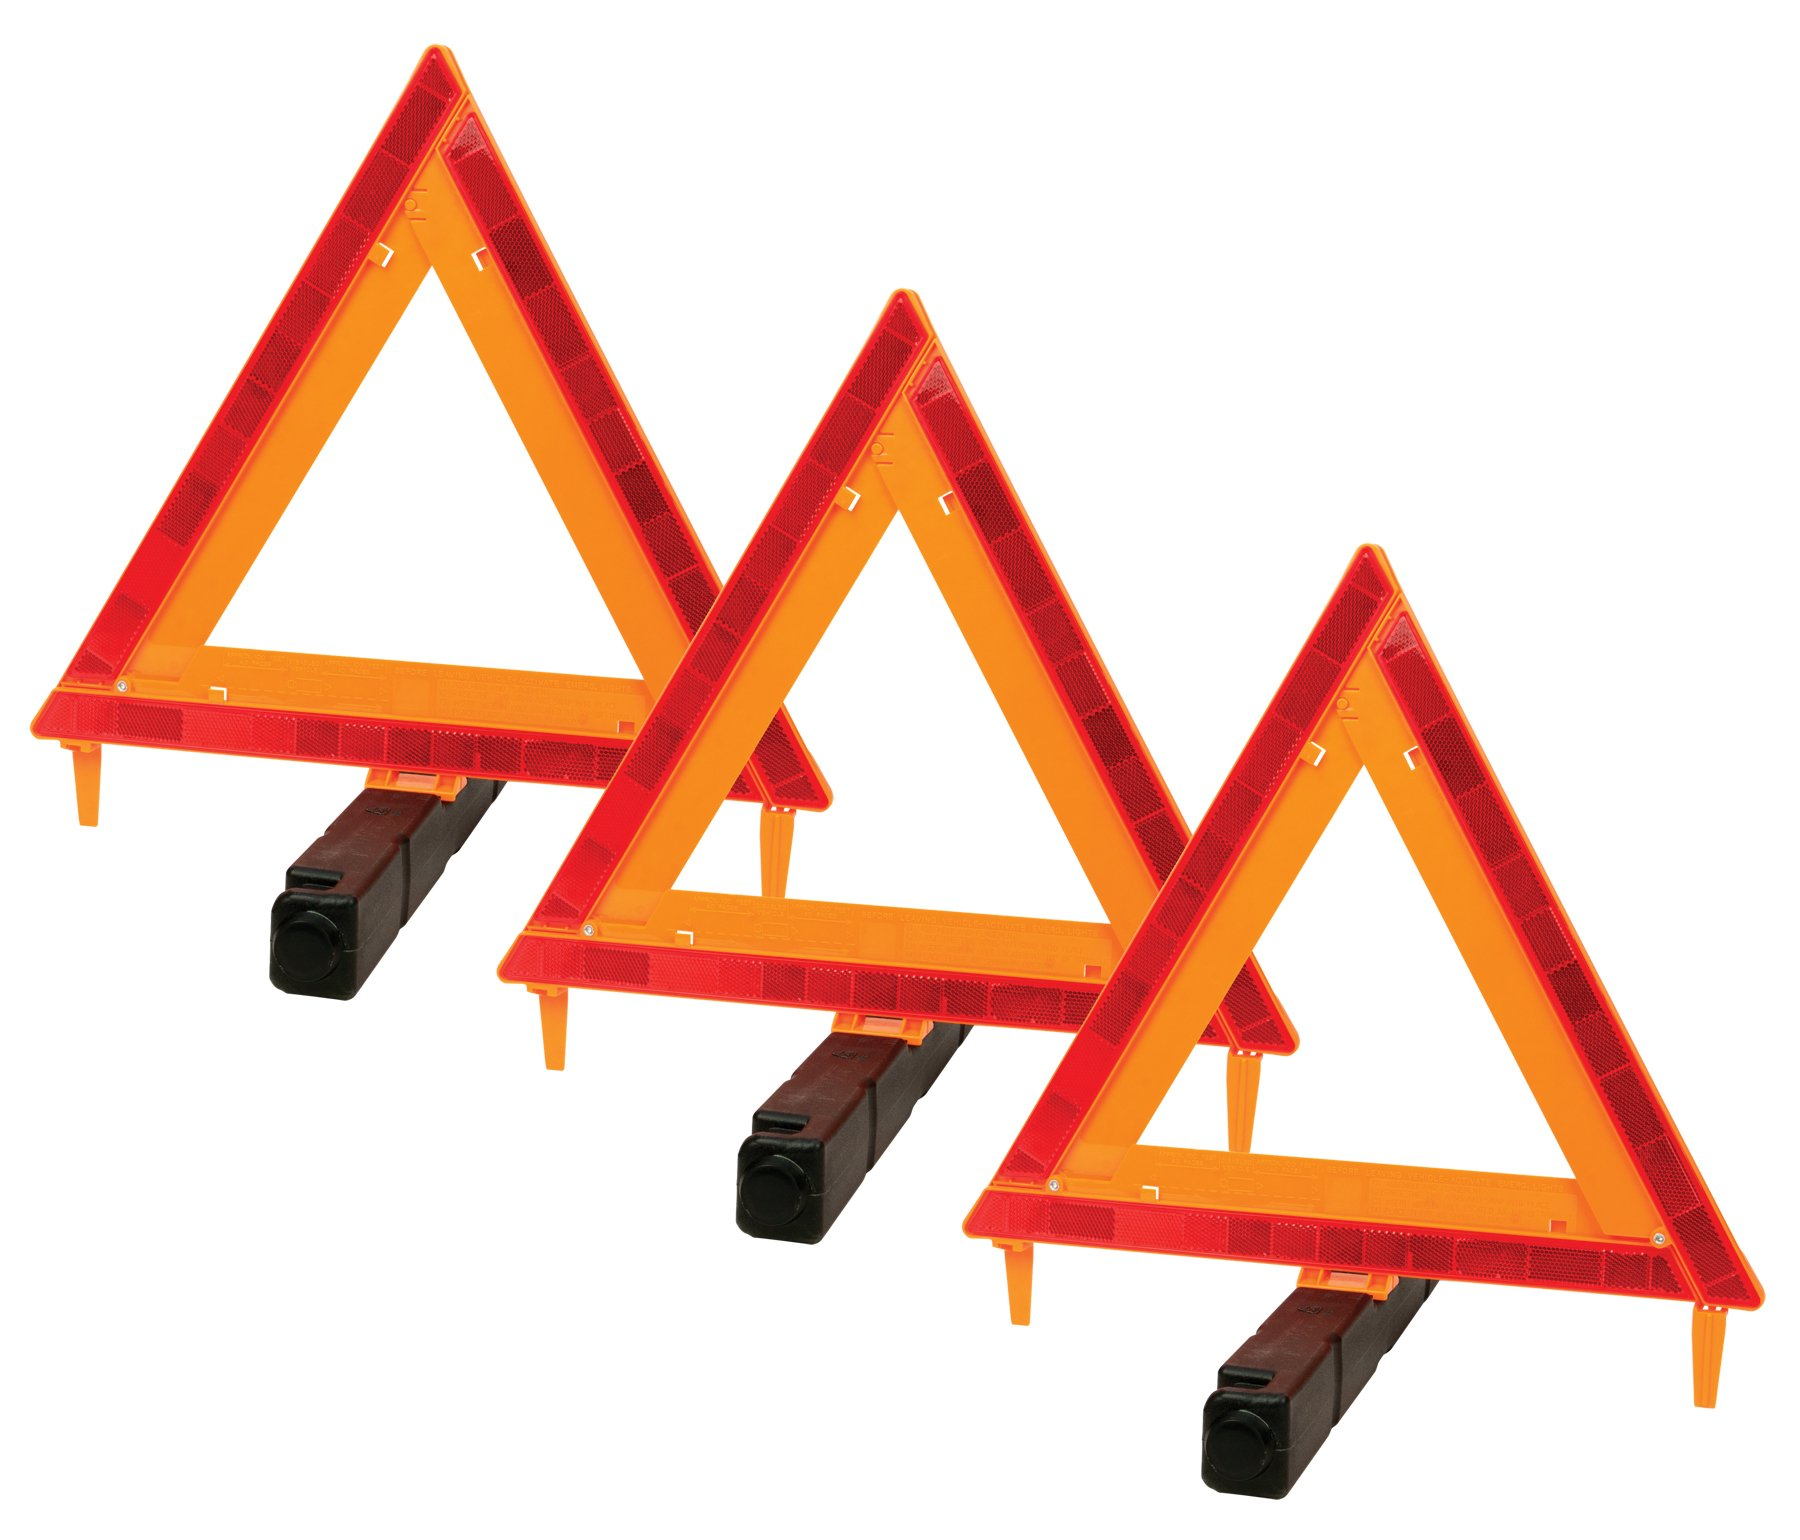 Performance Tool W1498 Large Early Warning Roadside Emergency Reflective Triangle (Pack of 3)